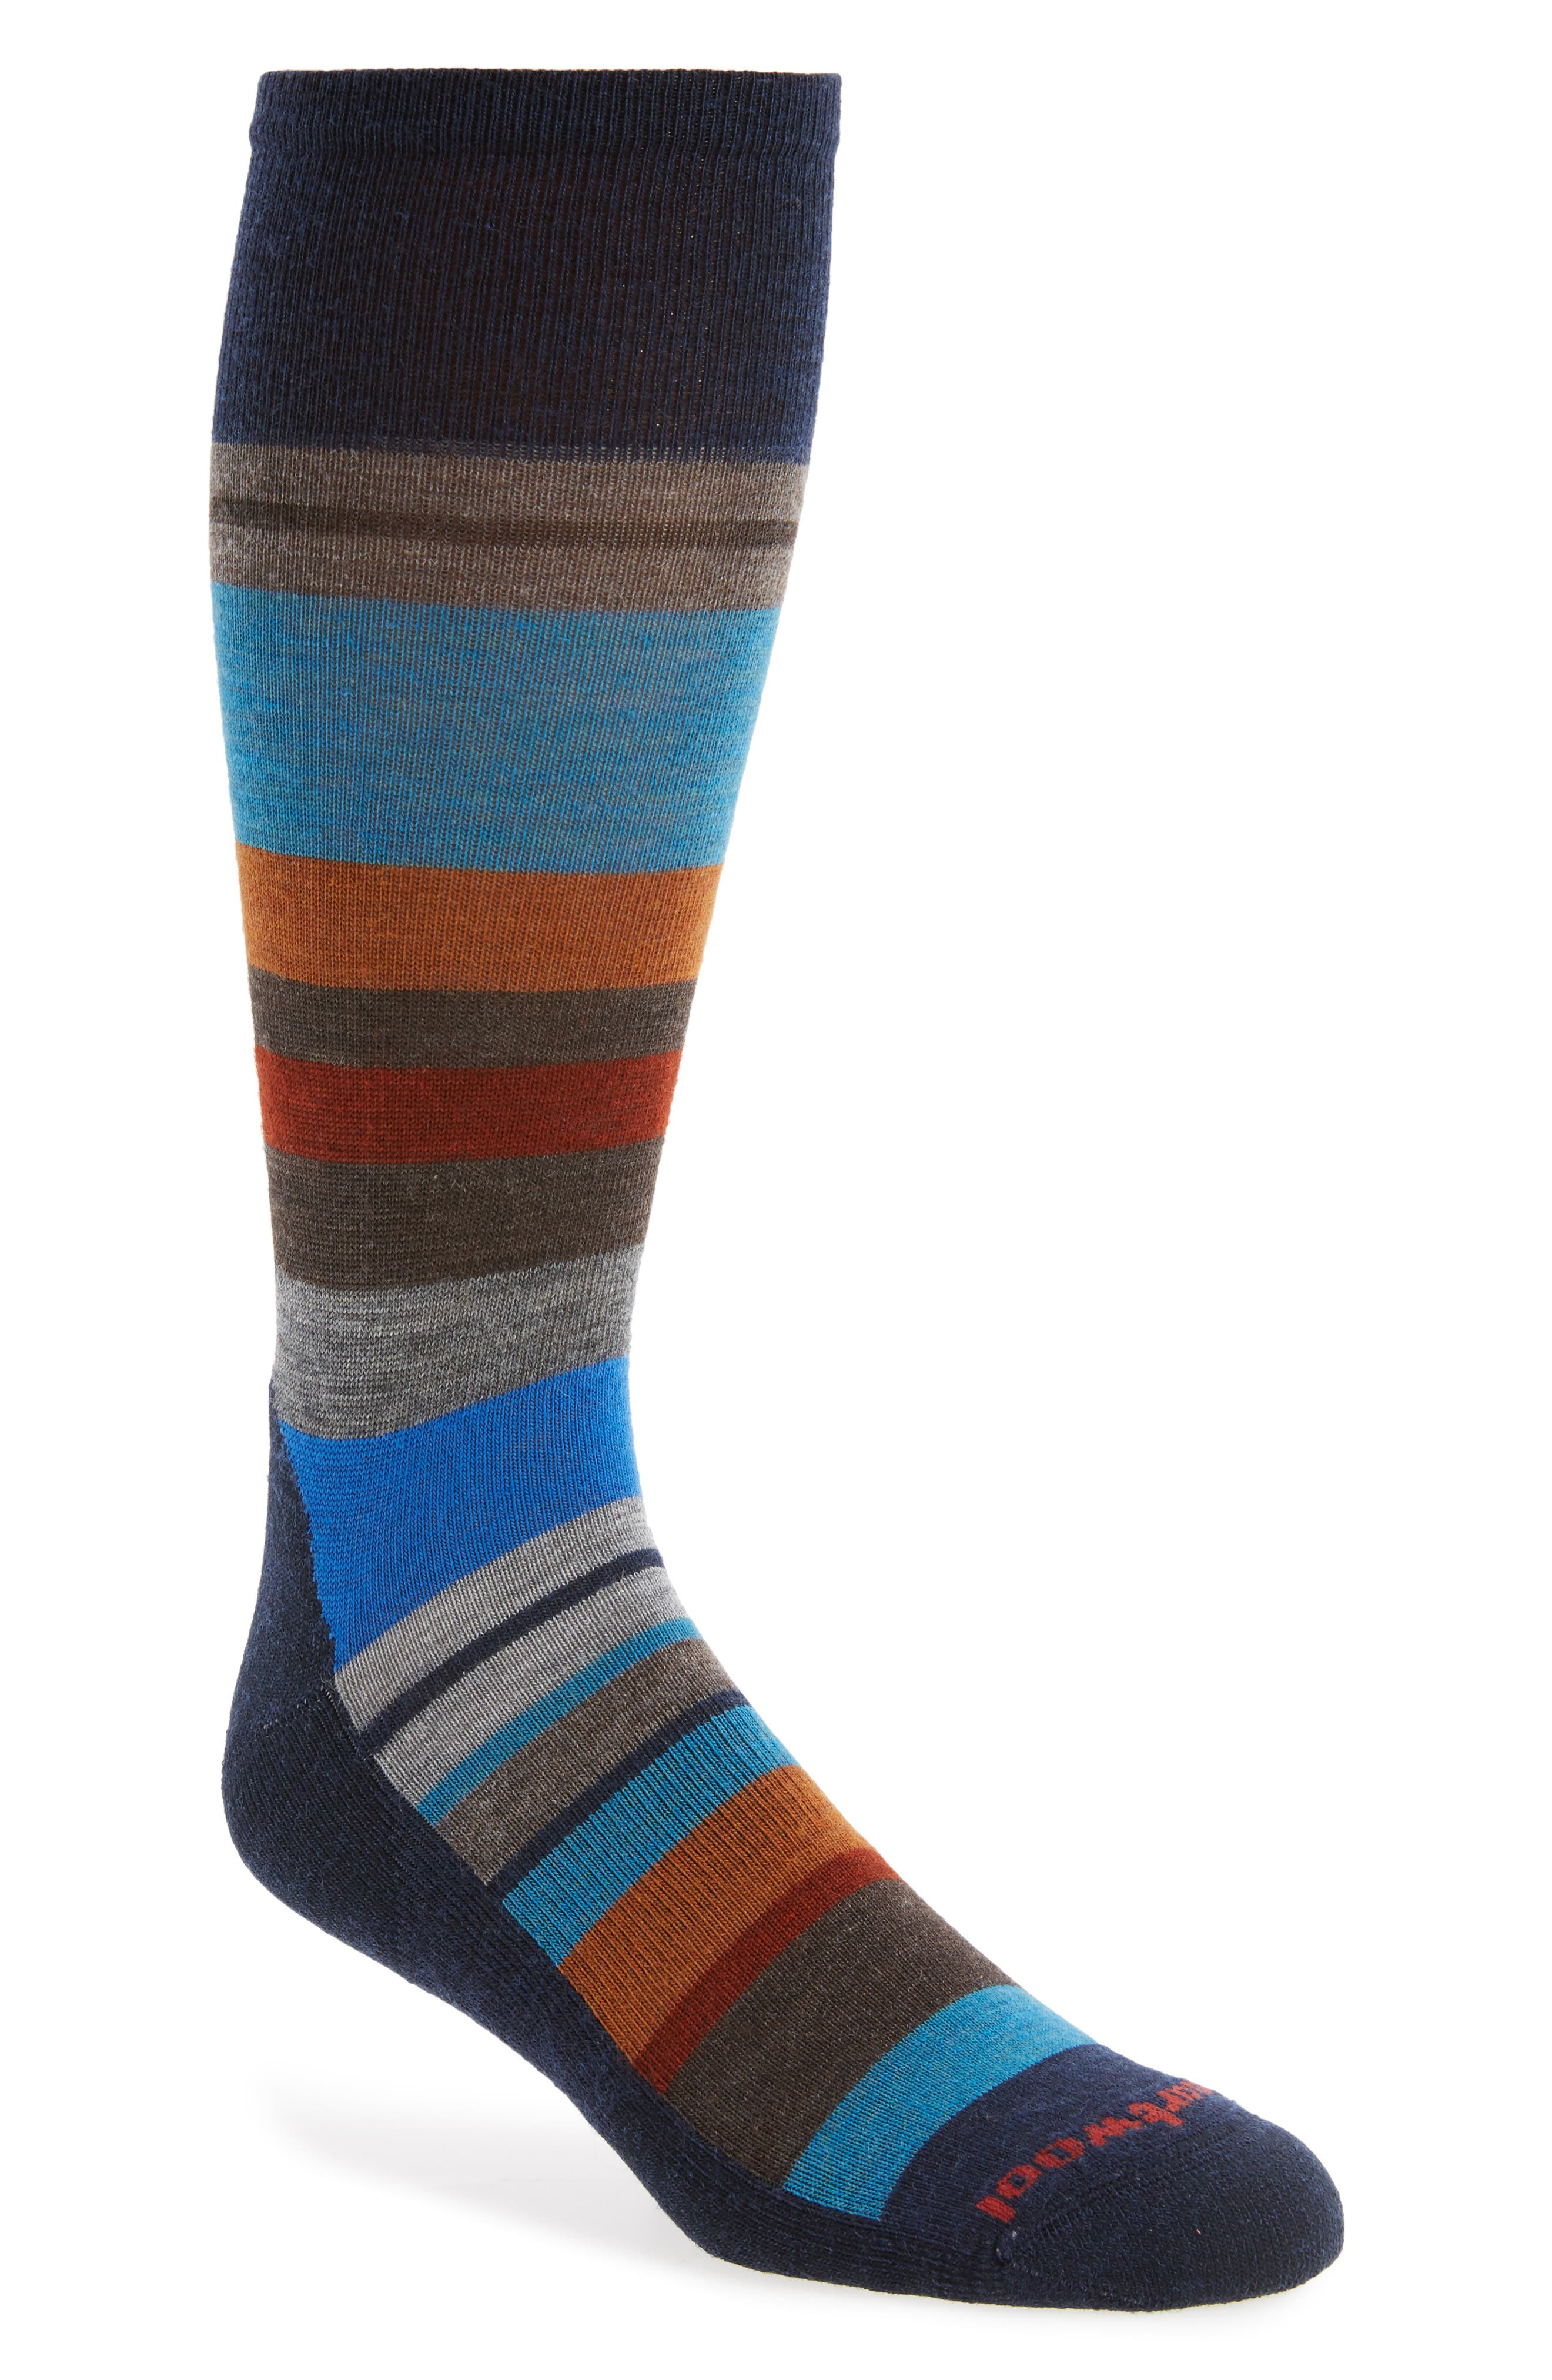 Smartwool Saturnsphere Striped Wool Blend Socks